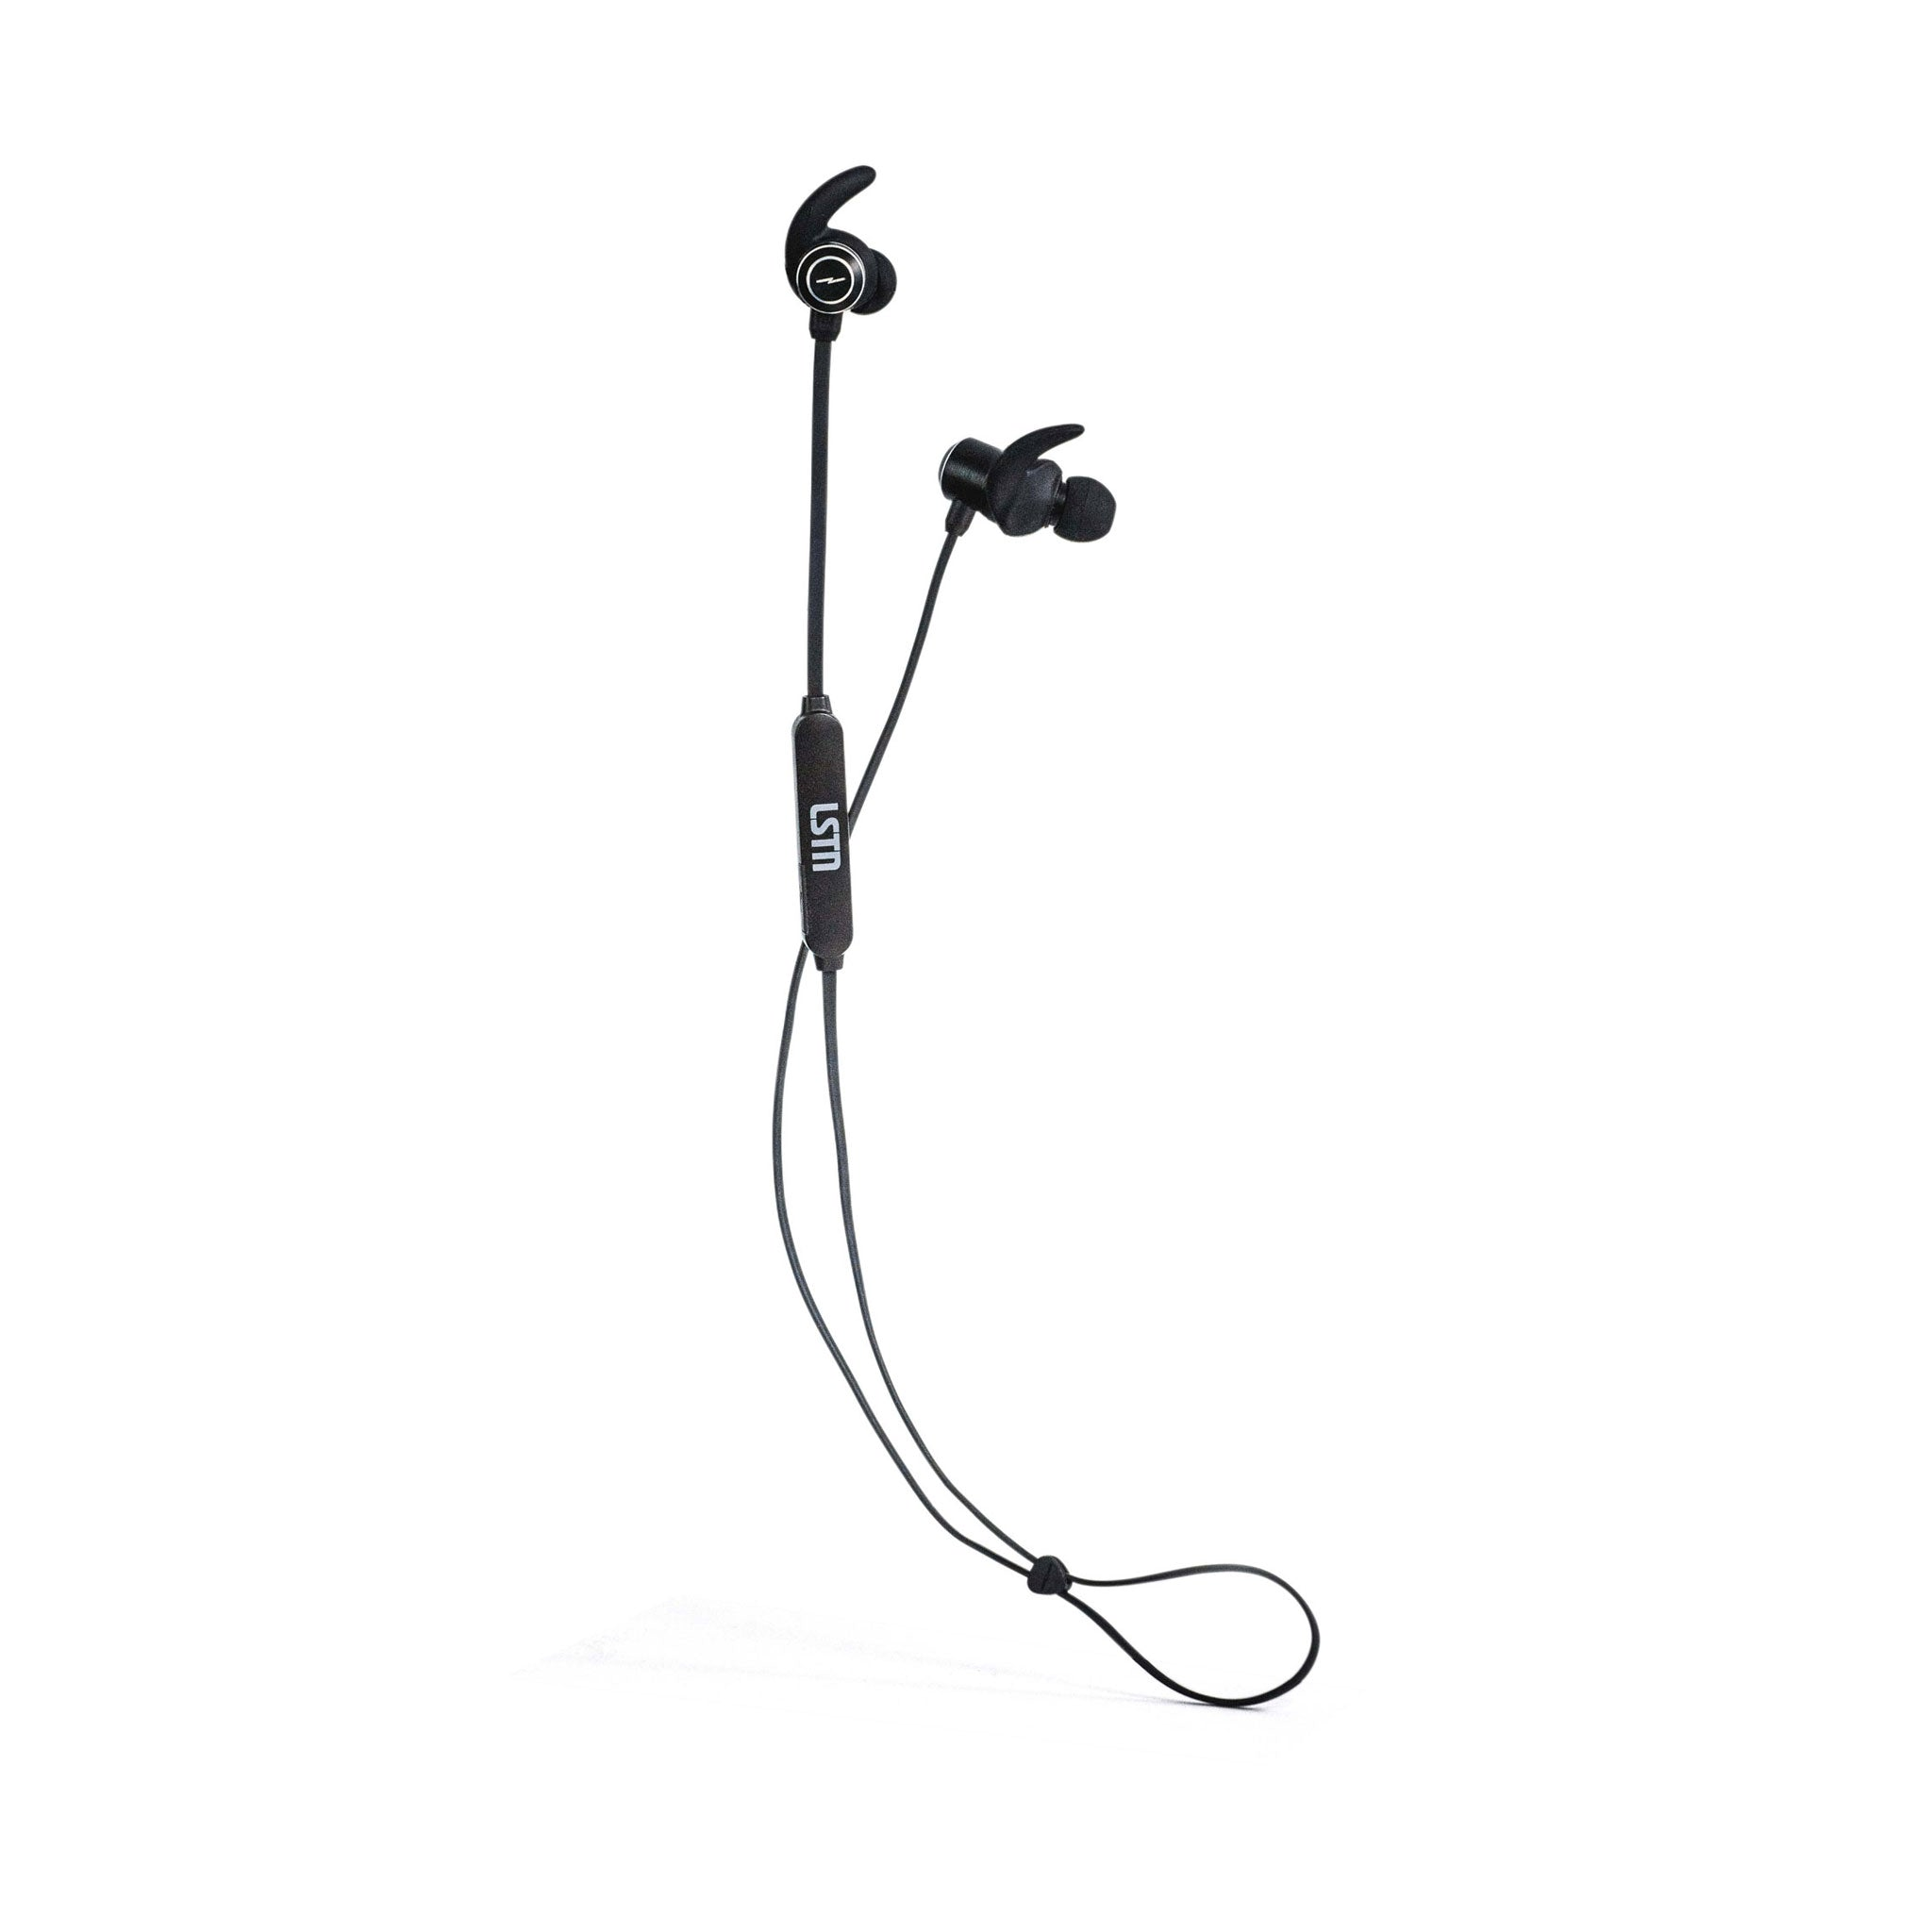 Bolt Wireless Earbuds - Black